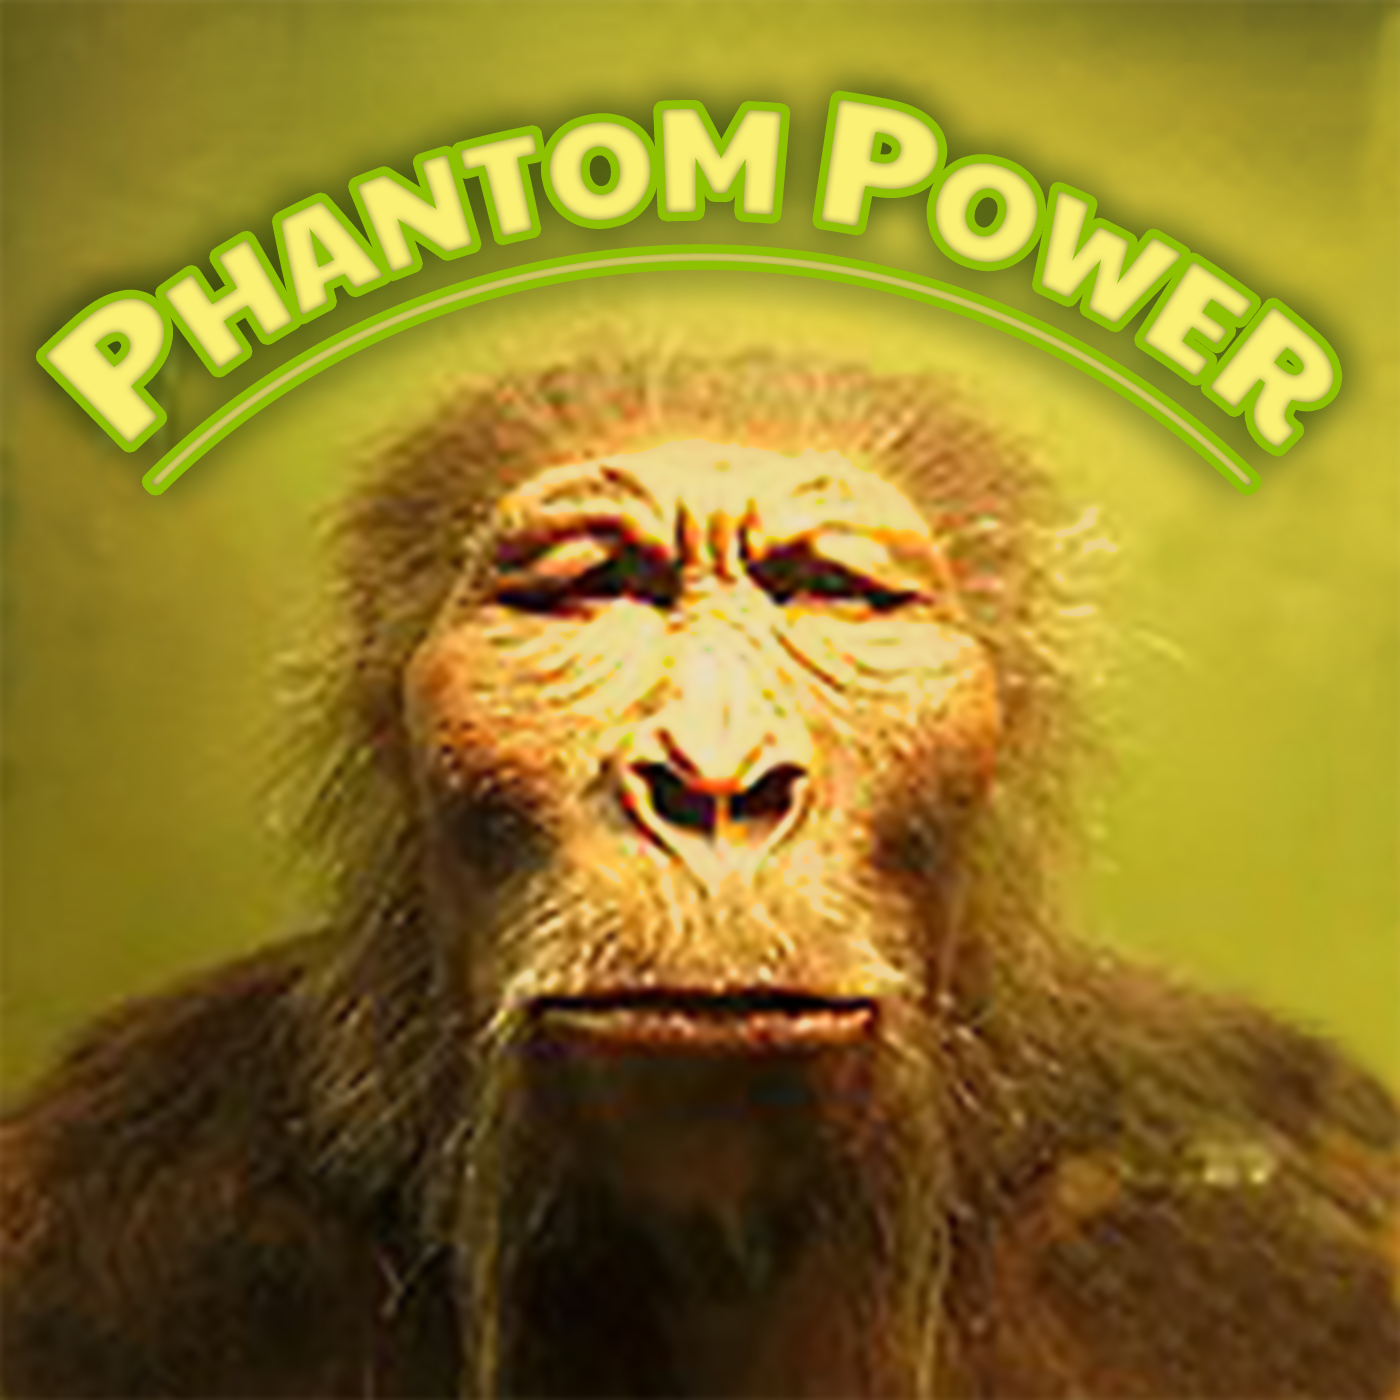 Phantom Power Radio